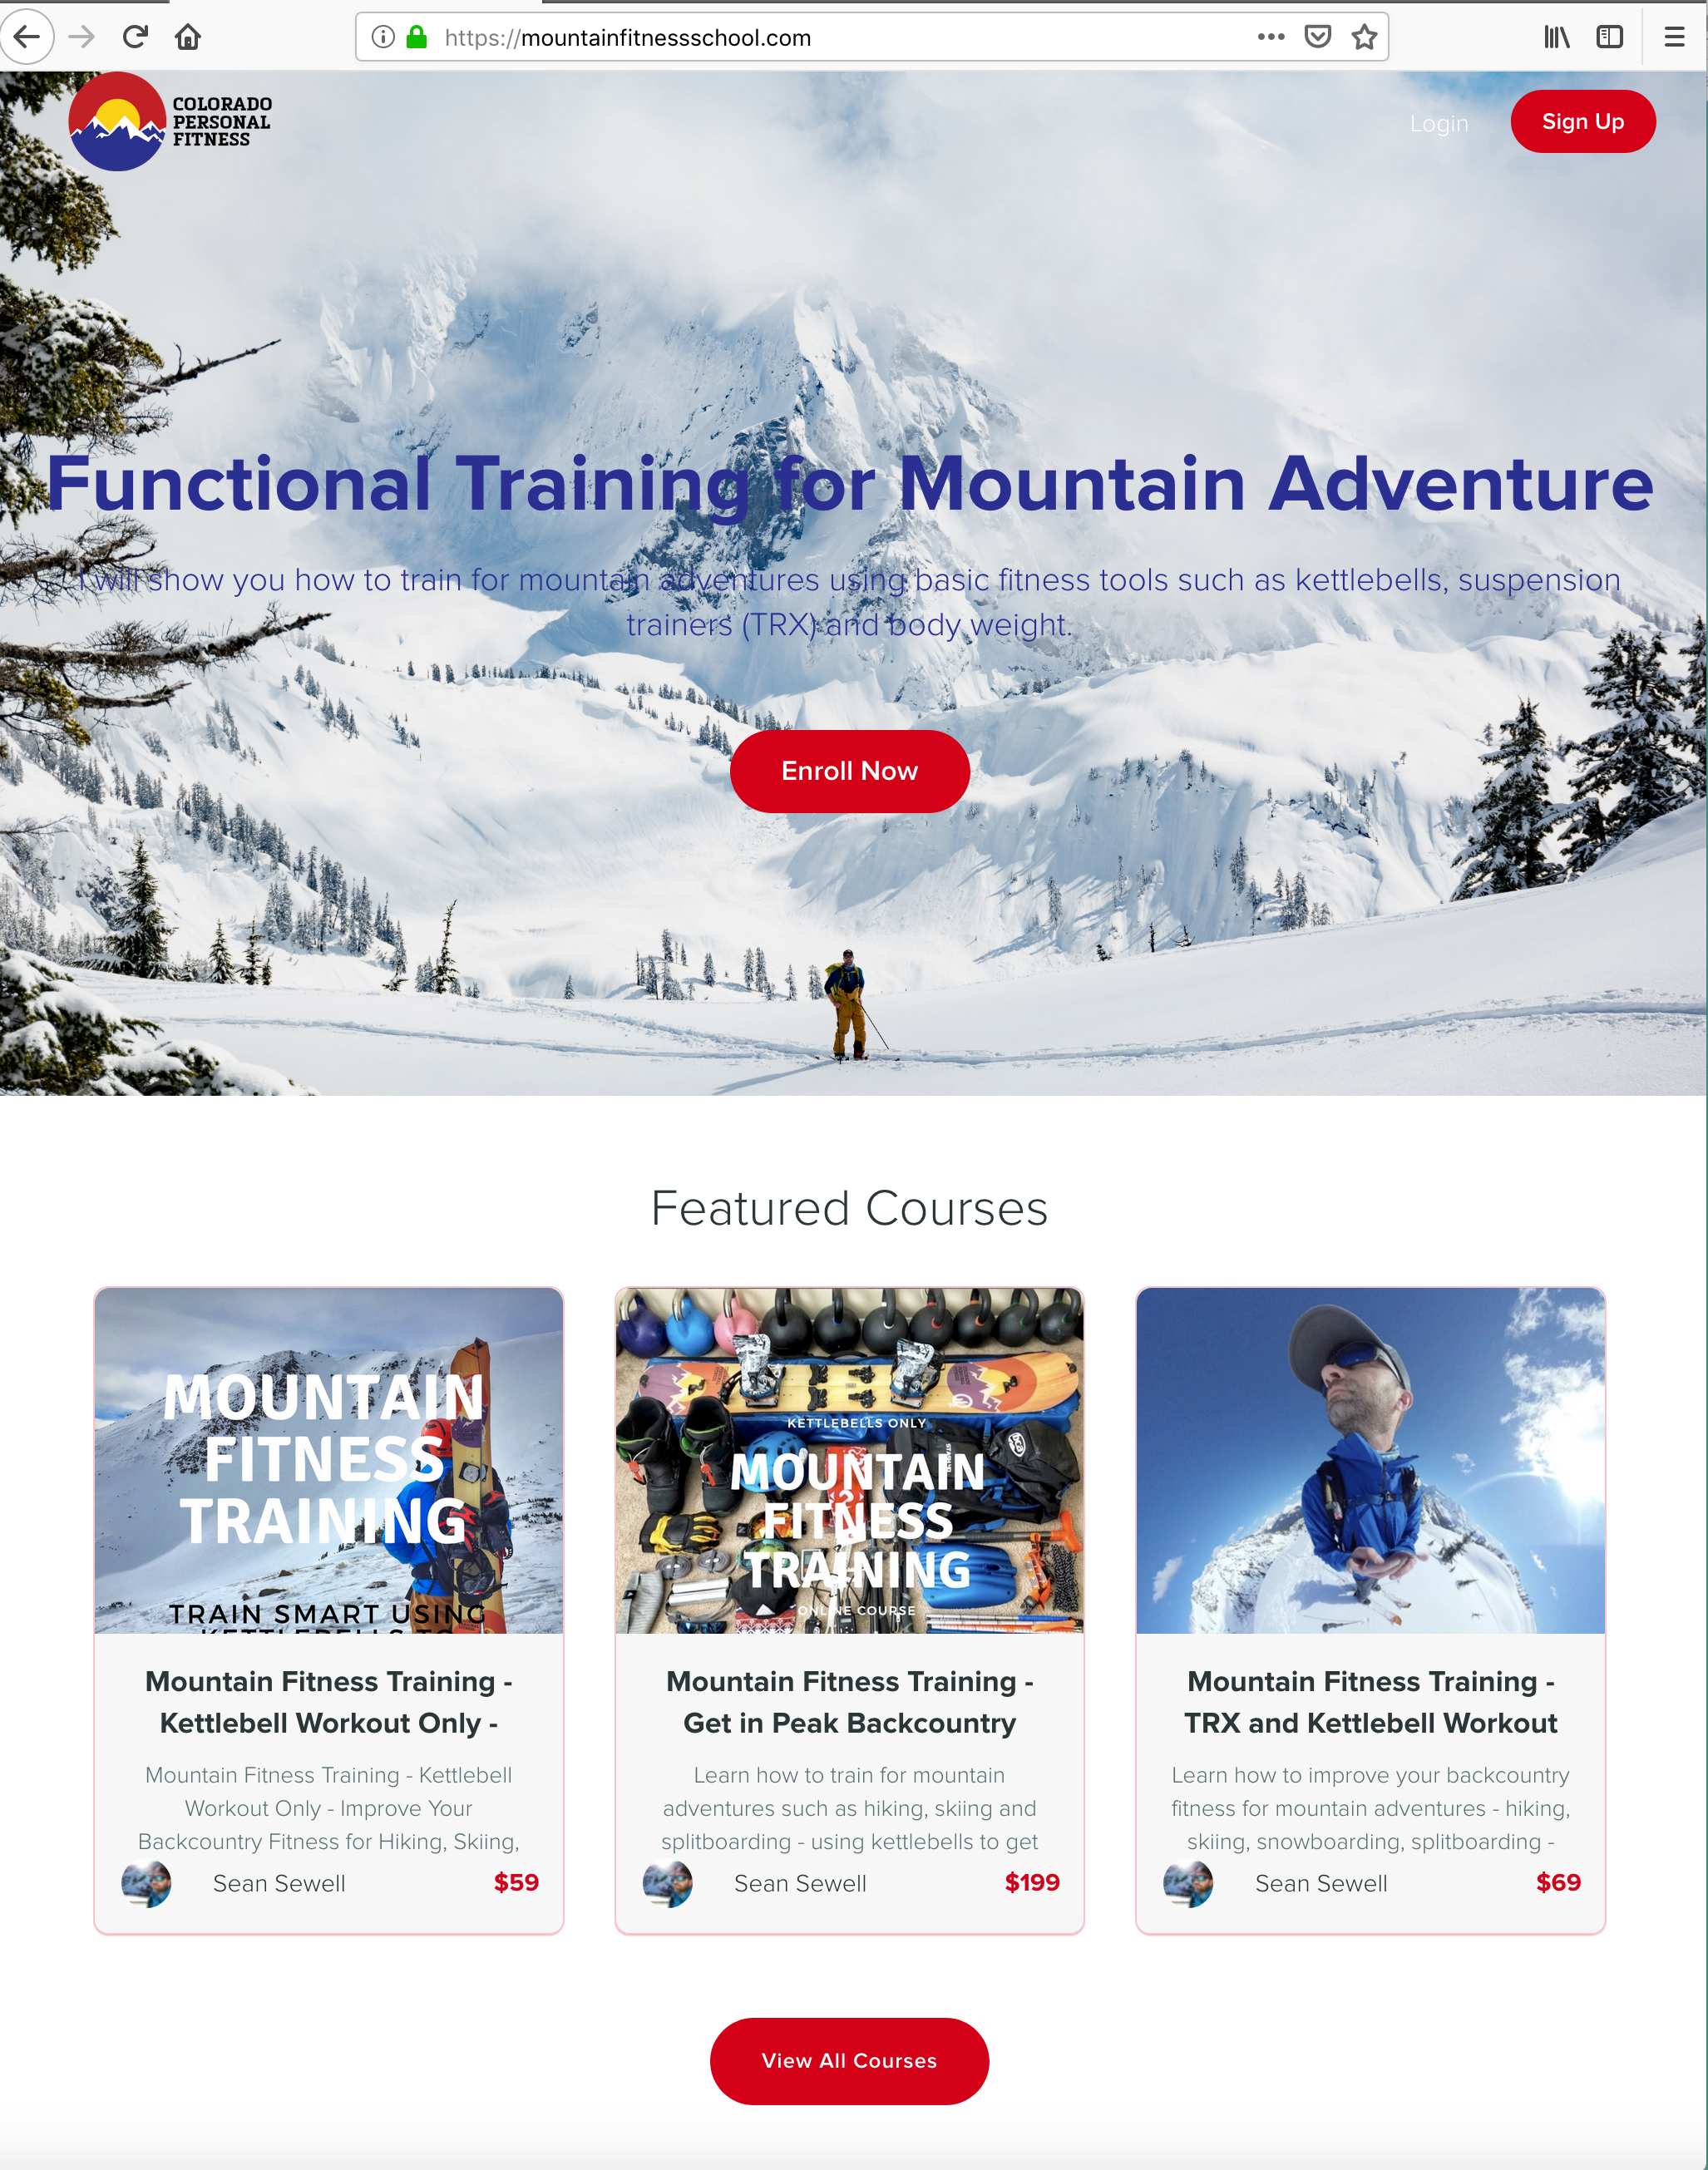 Mountain Fitness School Courses.png